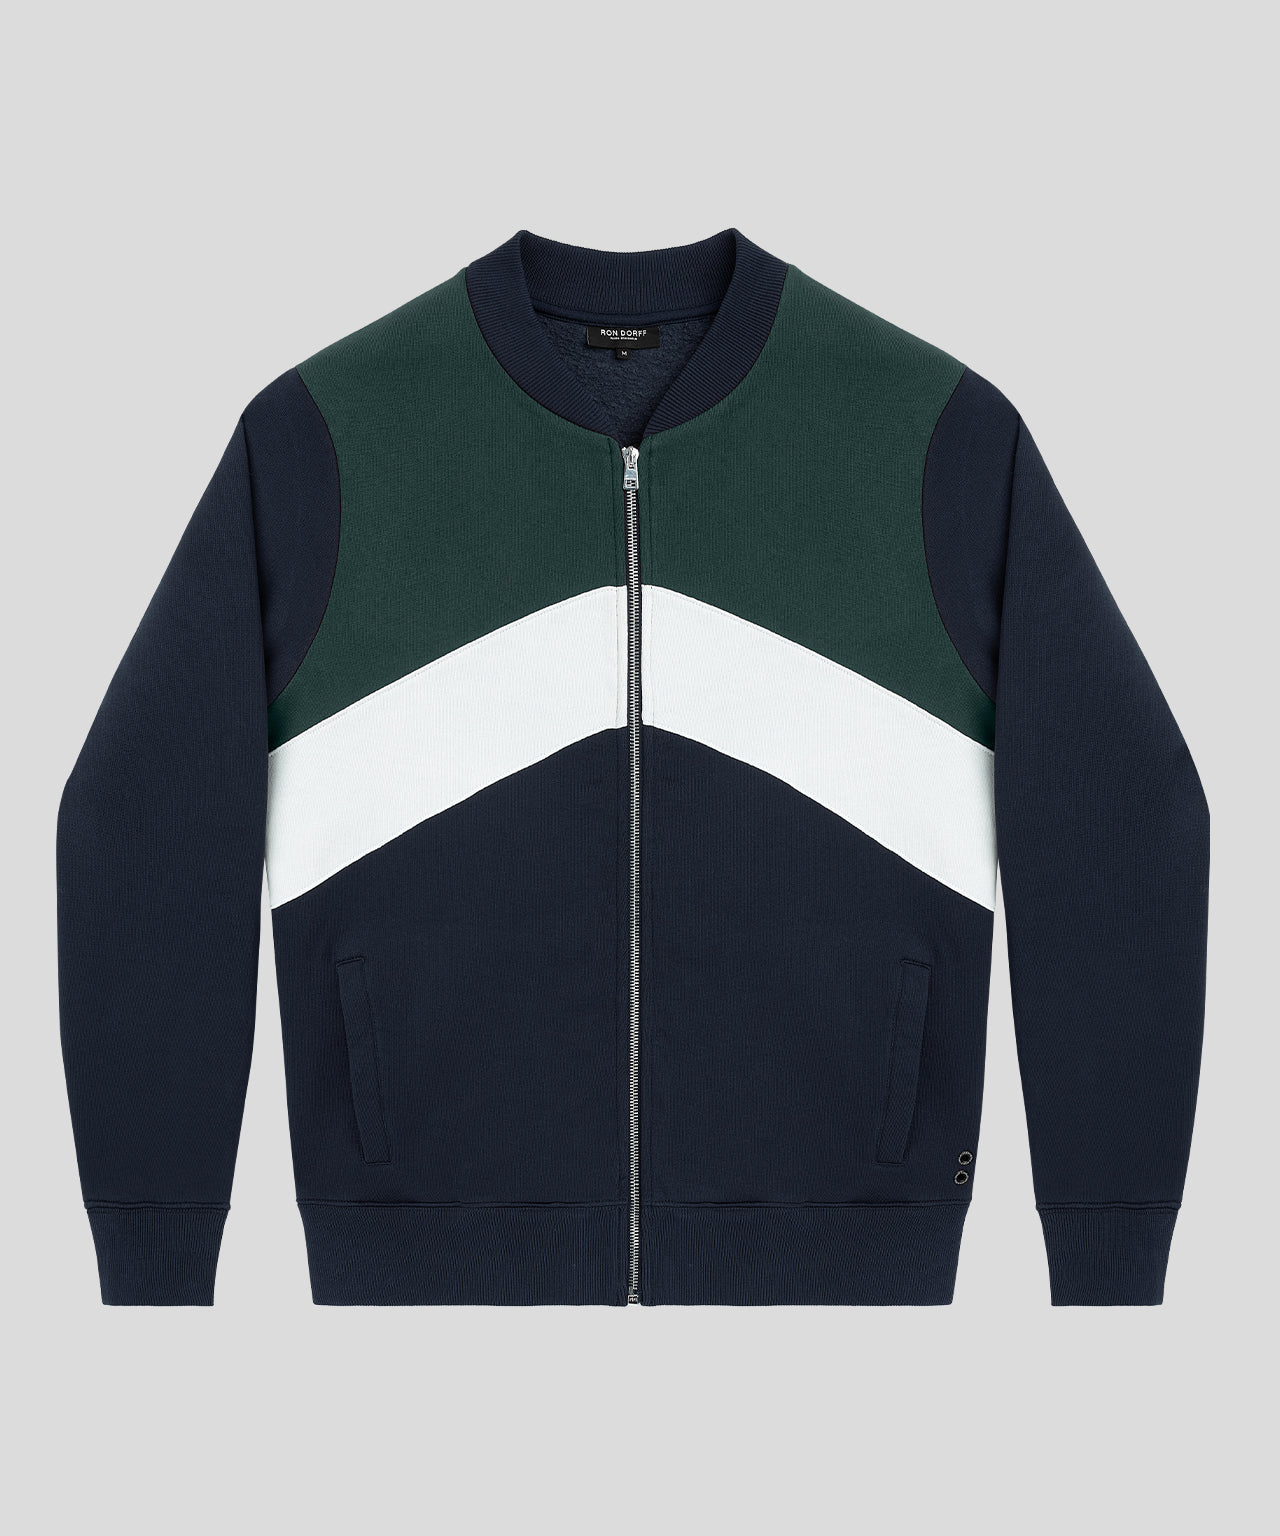 Chevron Tennis Jacket - tyrol green